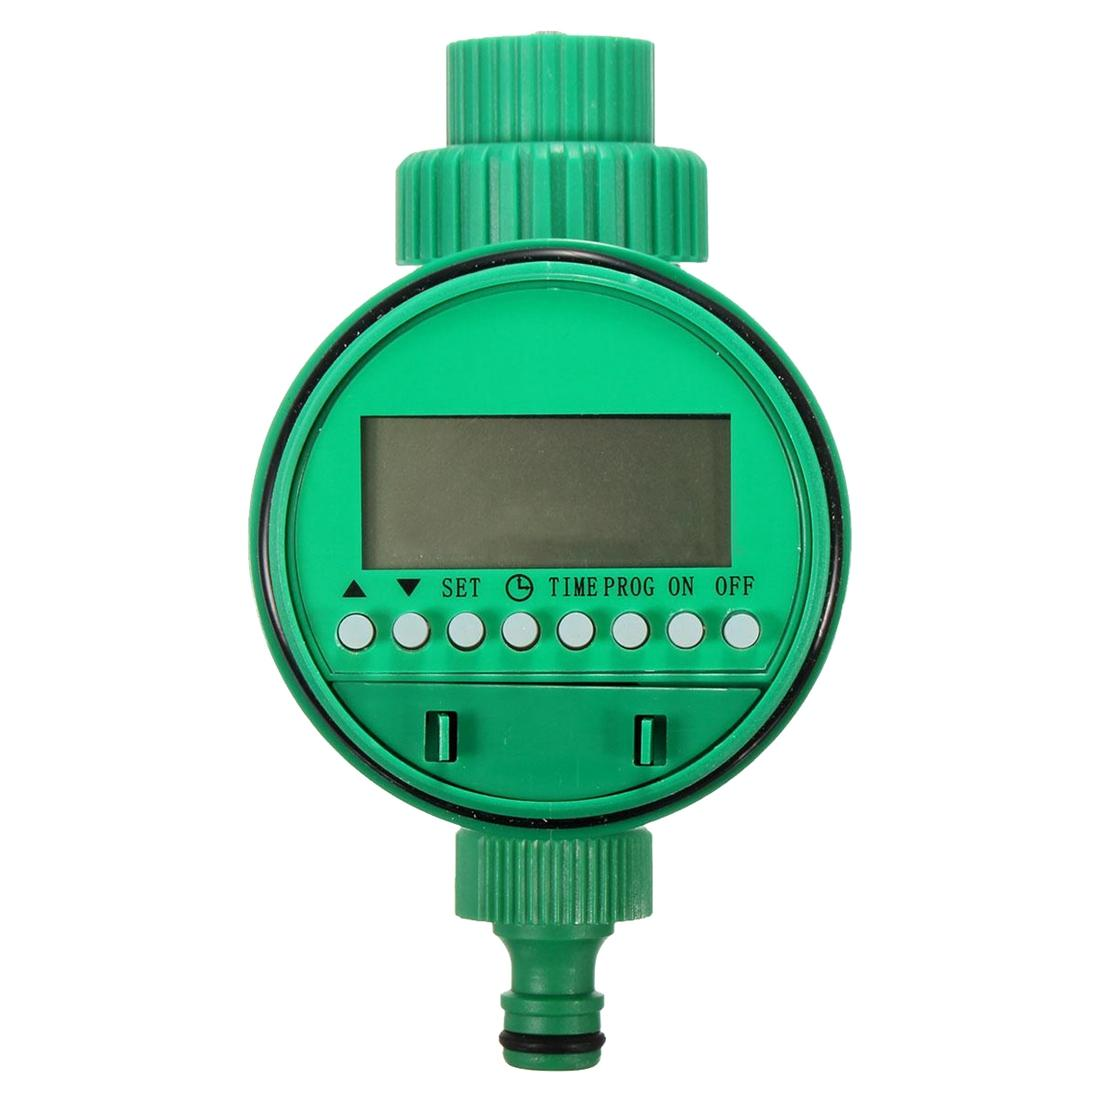 Charming Best Quality Electronic Lcd Screen Water Timer Automatic Garden Hose  Irrigation System Plant At Cheap Price, Online Watering Equipments |  Dhgate.Com